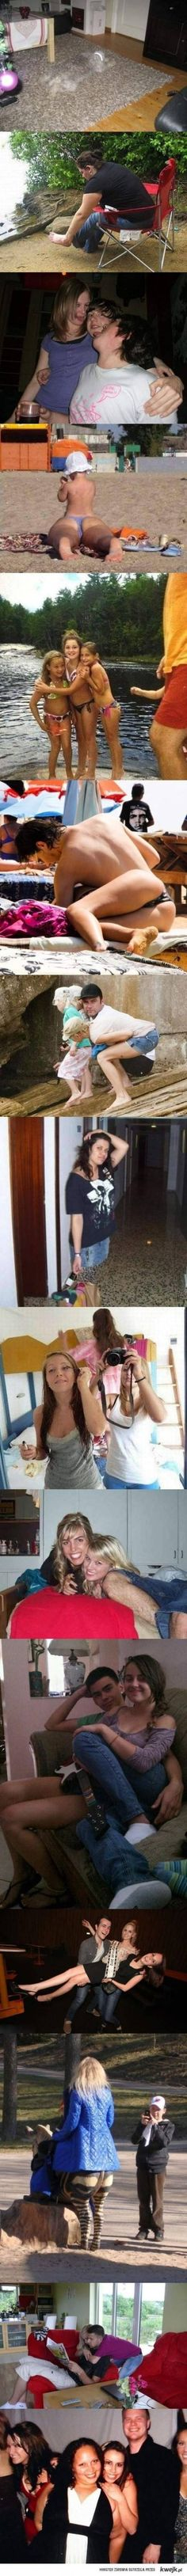 Why camera angles are critical... - Imgur